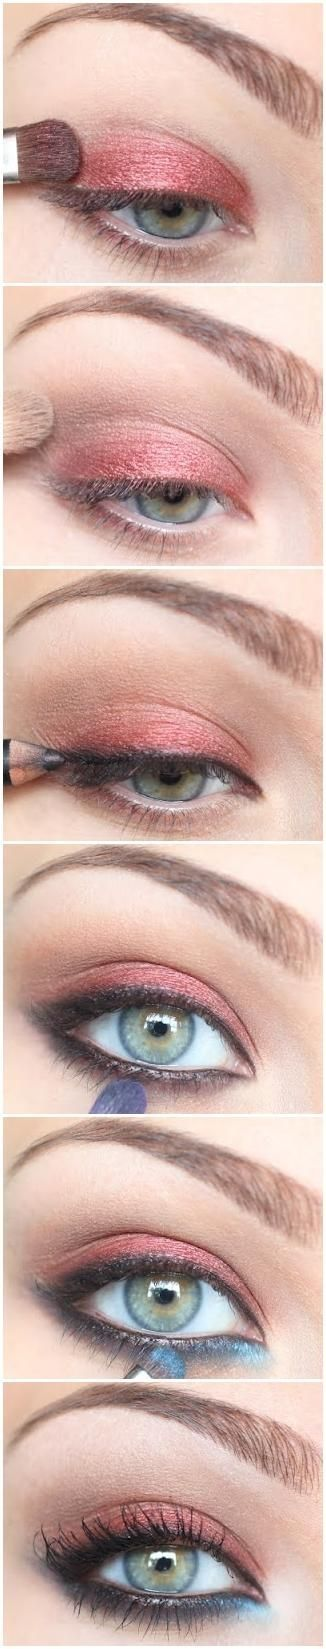 eyeshadow: coral shadow on top, light blue in the lower inner corner by Jessica Huth